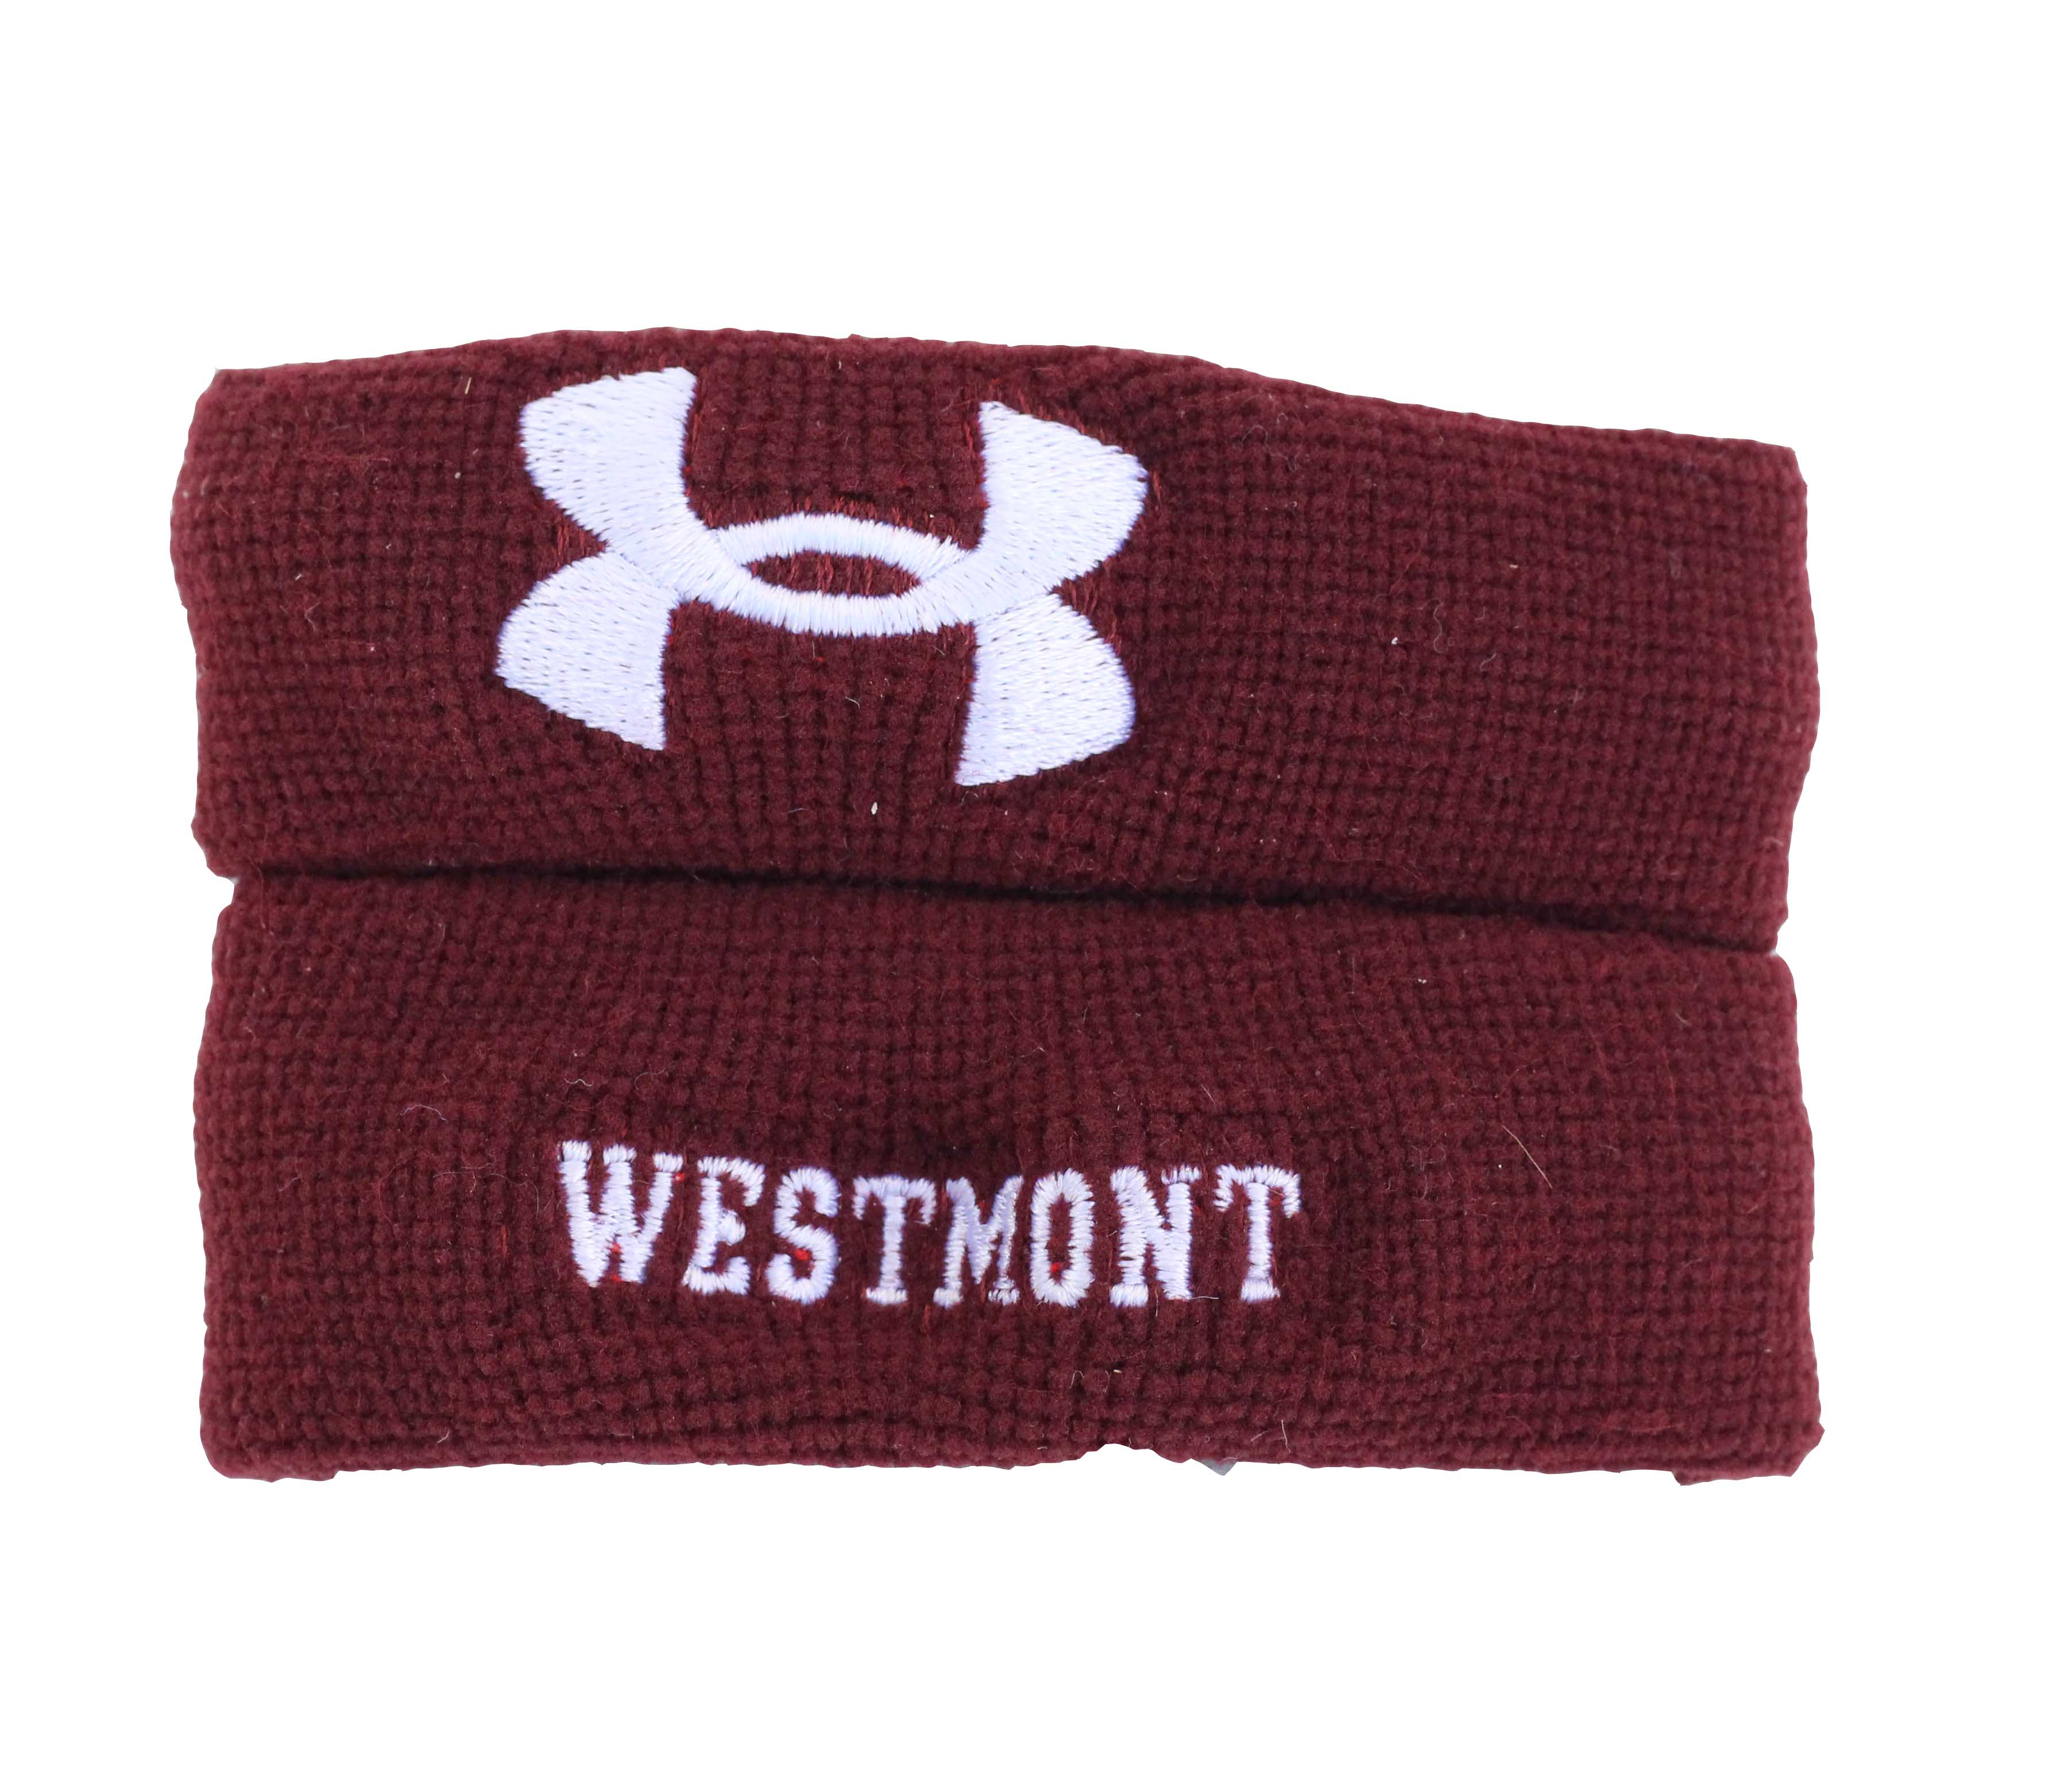 Image for the Under Armour Wristband product